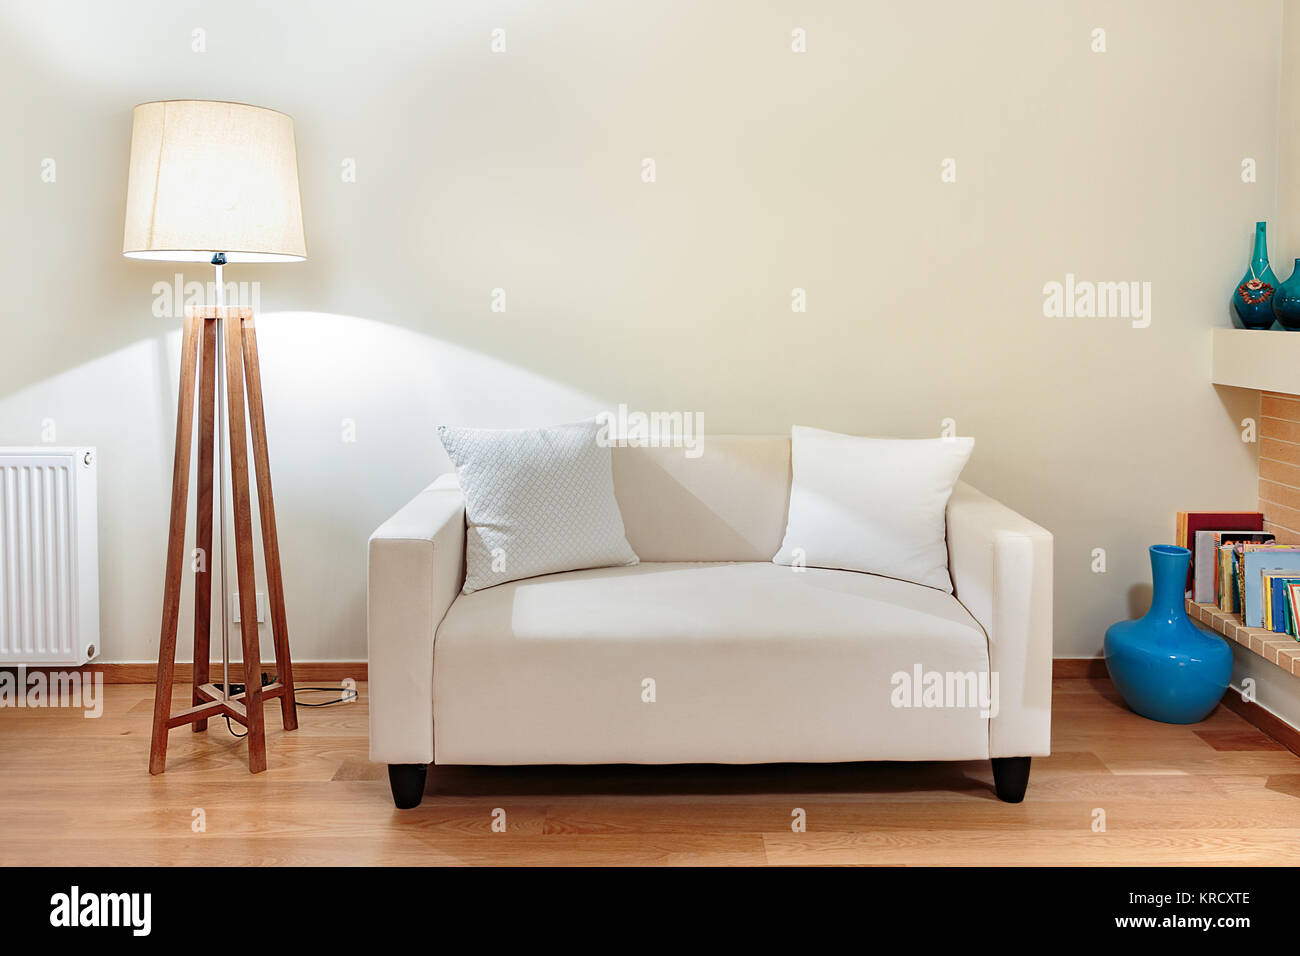 A small two seater sofa with two little pillows and a wooden base lamp on an oak floor. - Stock Image